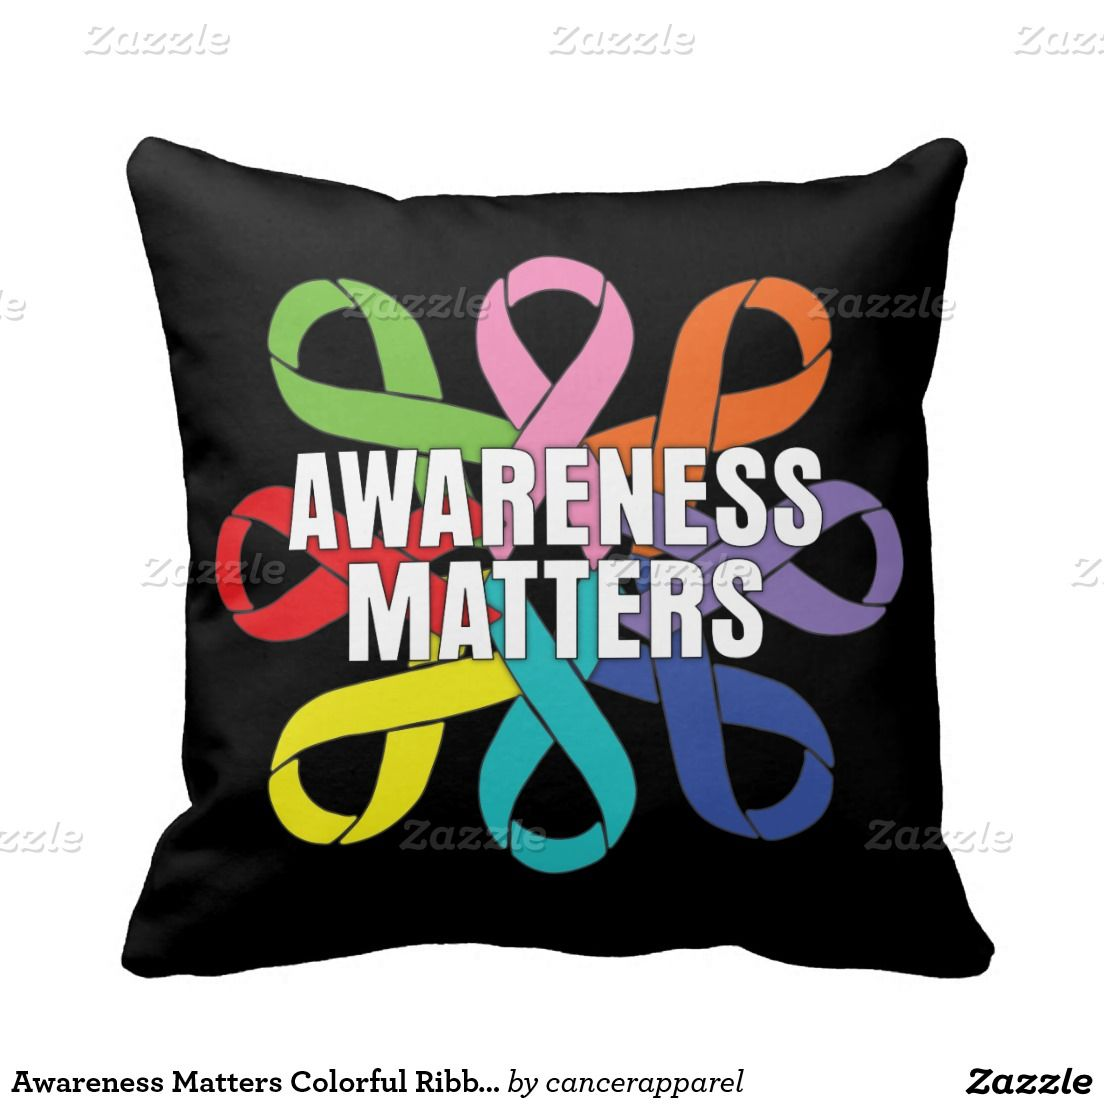 Awareness matters colorful ribbons throw pillows cancer awareness